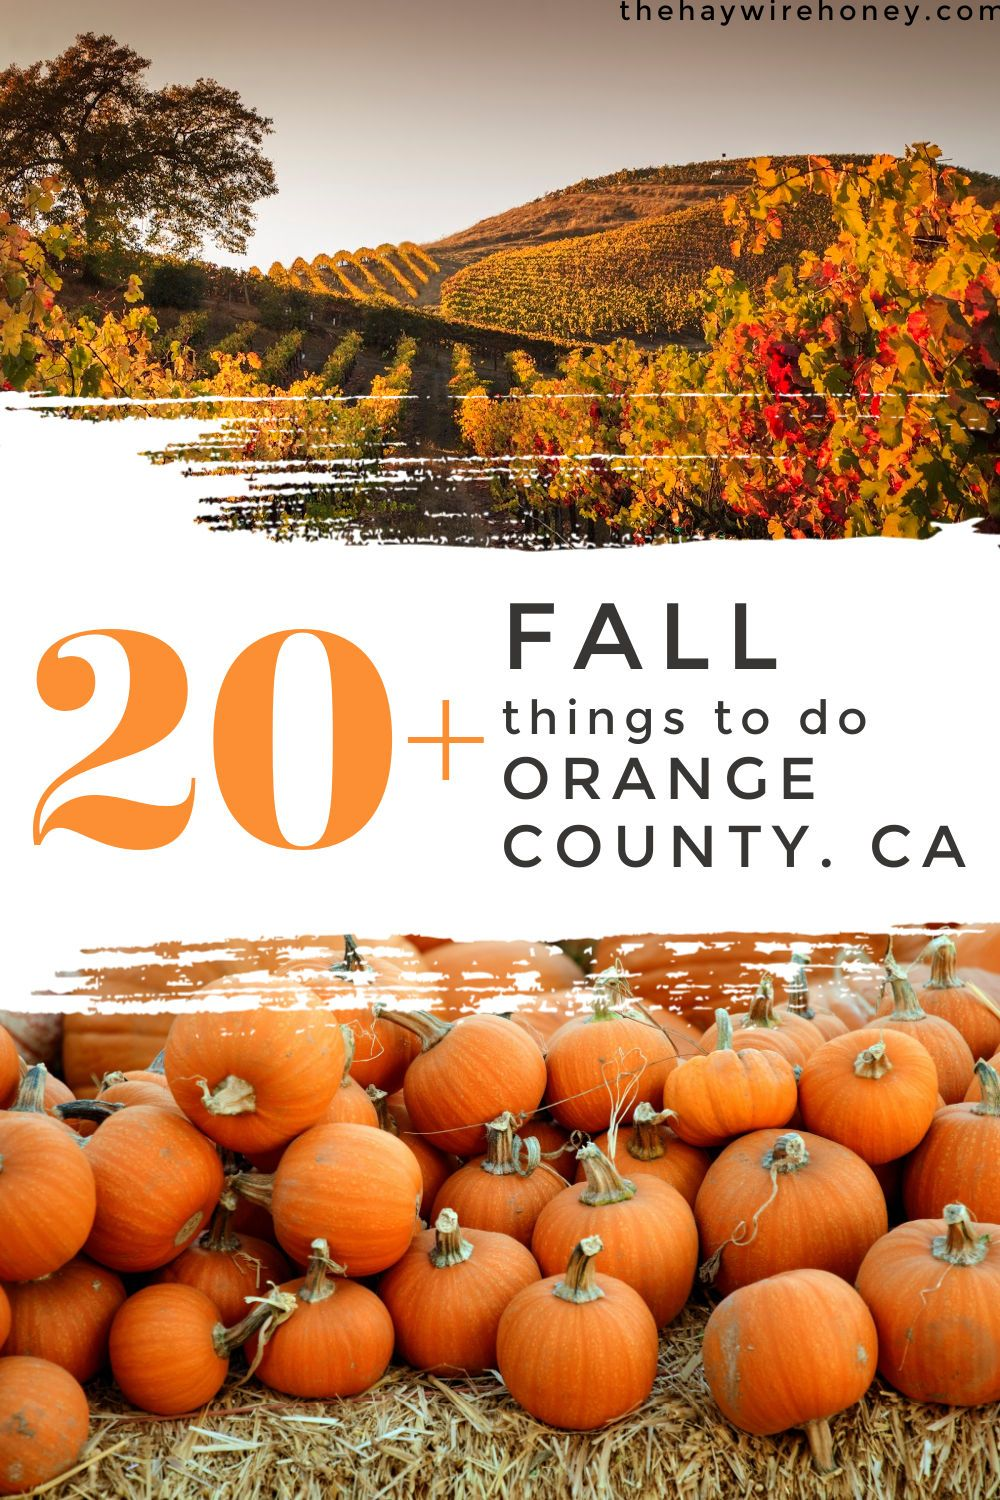 Things To Do For Fall In Orange County The Haywire Honey In 2020 California Travel Road Trips Travel Style Fall Weekend Family Getaways